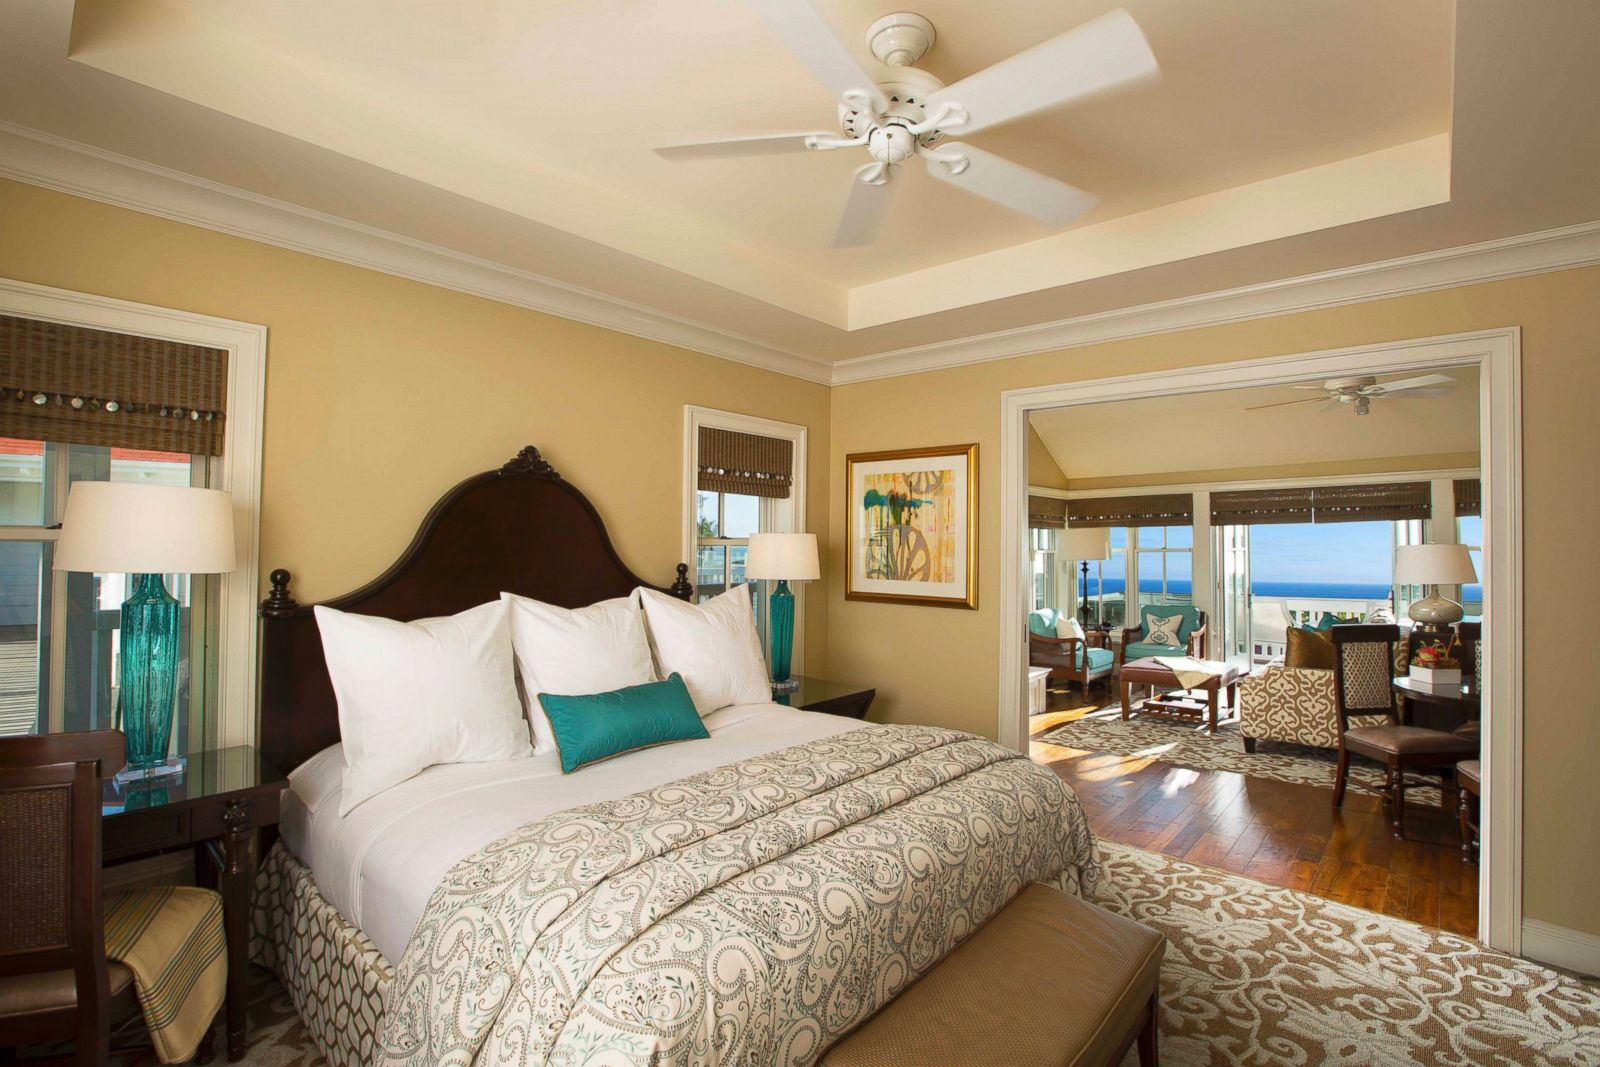 Hotel Suite Of The Week Beach Village Cottage At Del Coronado Photos Image 1 Abc News